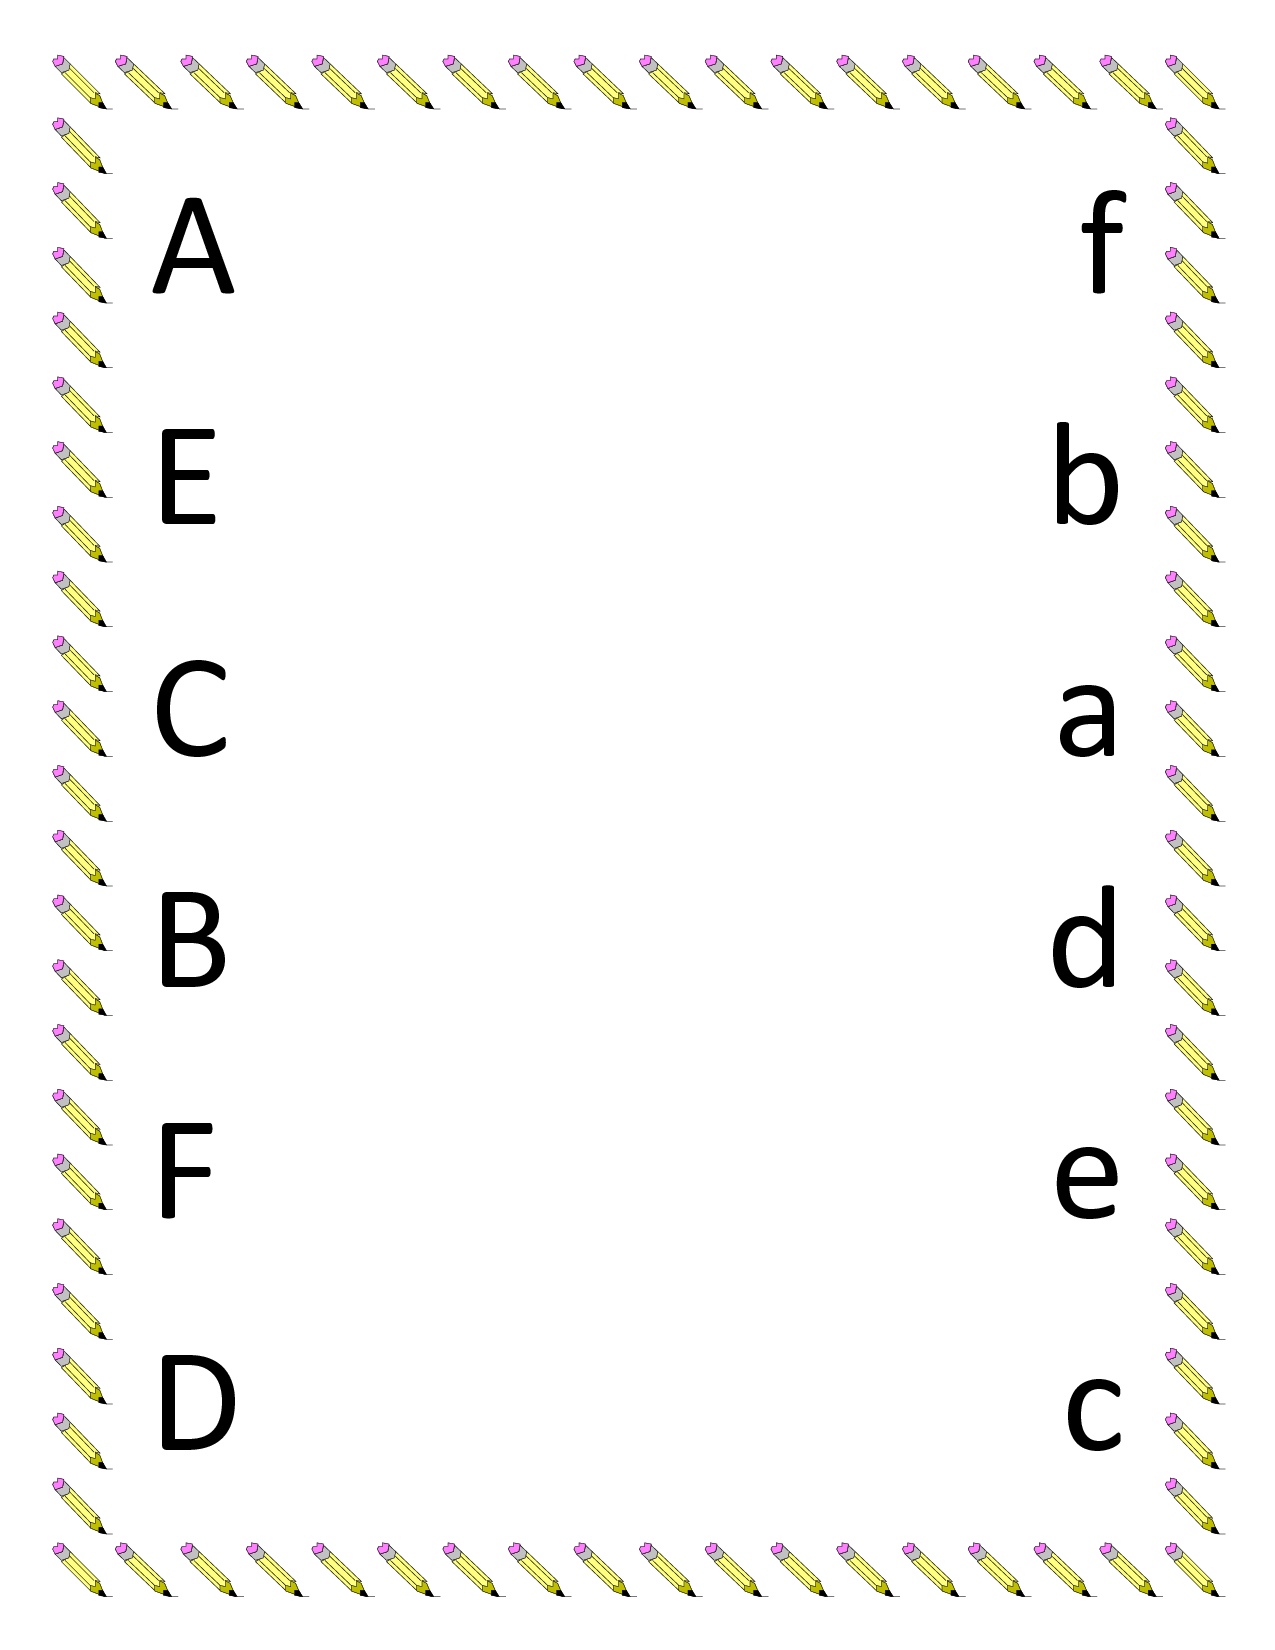 kindergarten worksheets preschool worksheets printables for kids 16 pictures photos